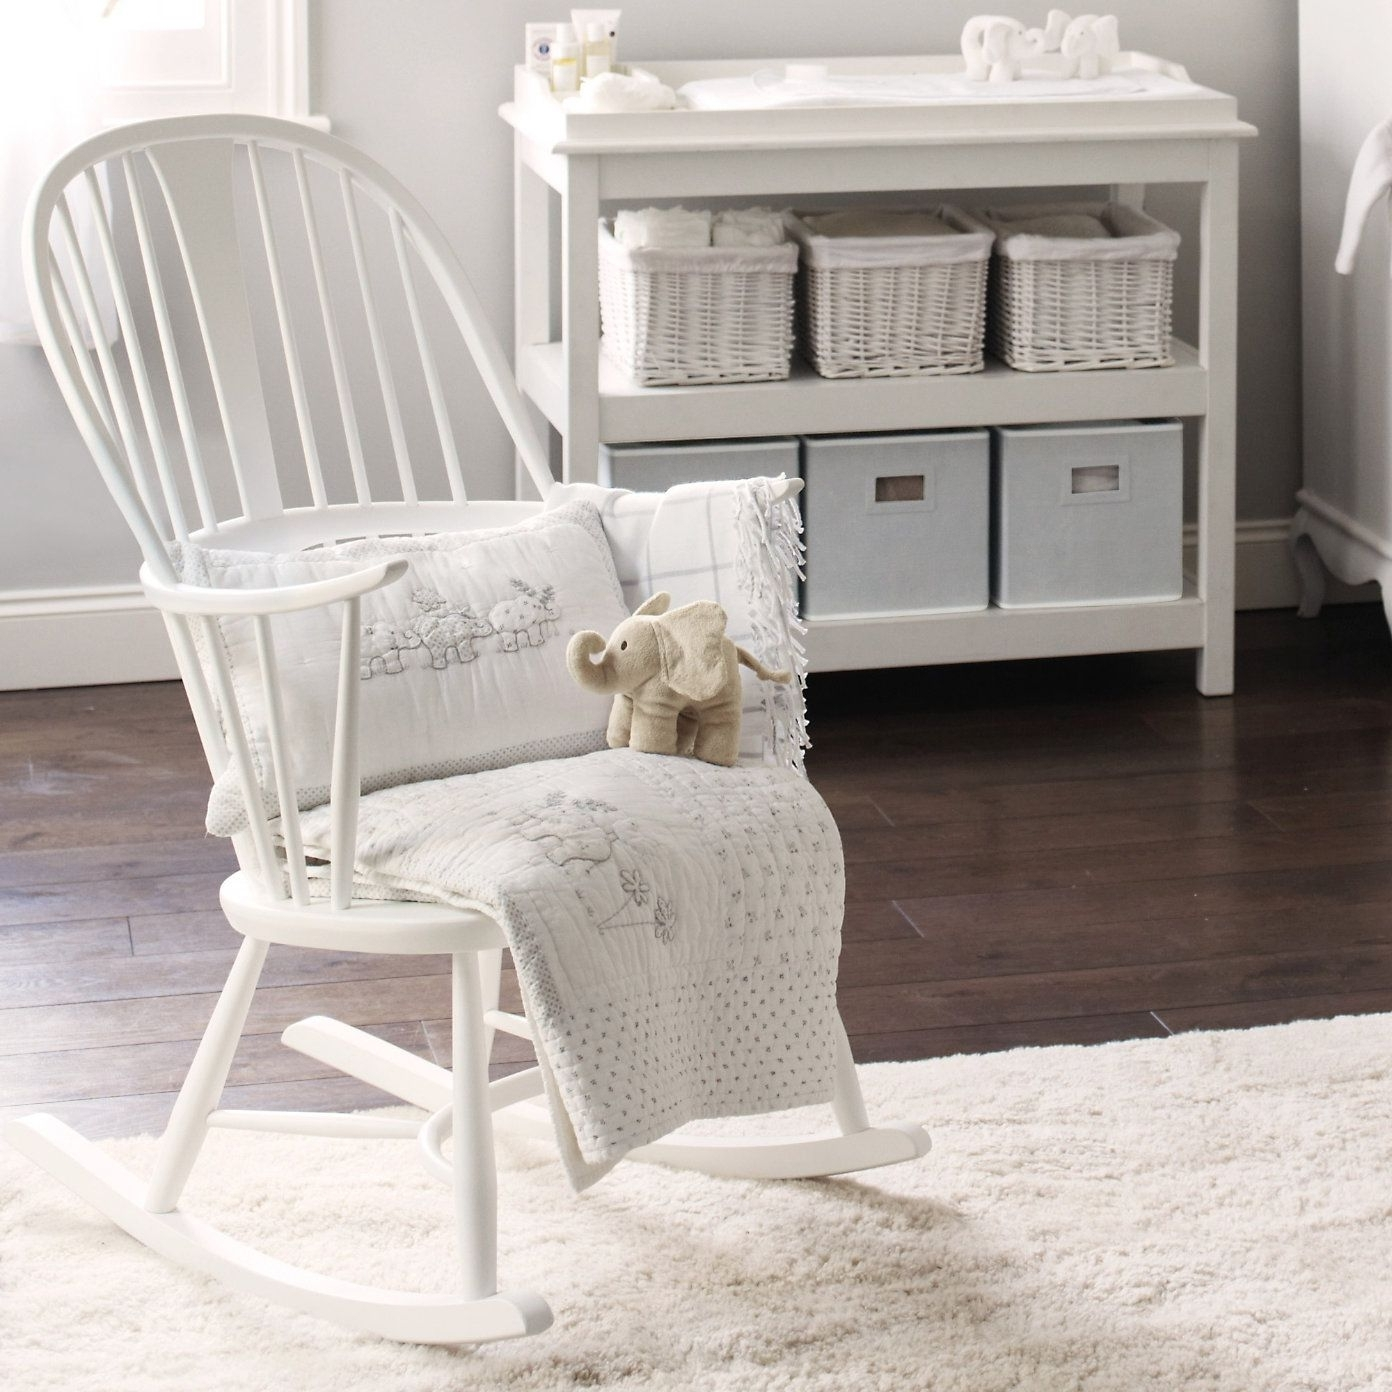 Fashionable Rocking Chairs For Baby Room For Buy Lookbooks > Home > Ercol Rocking Chair – White From The White (View 7 of 20)